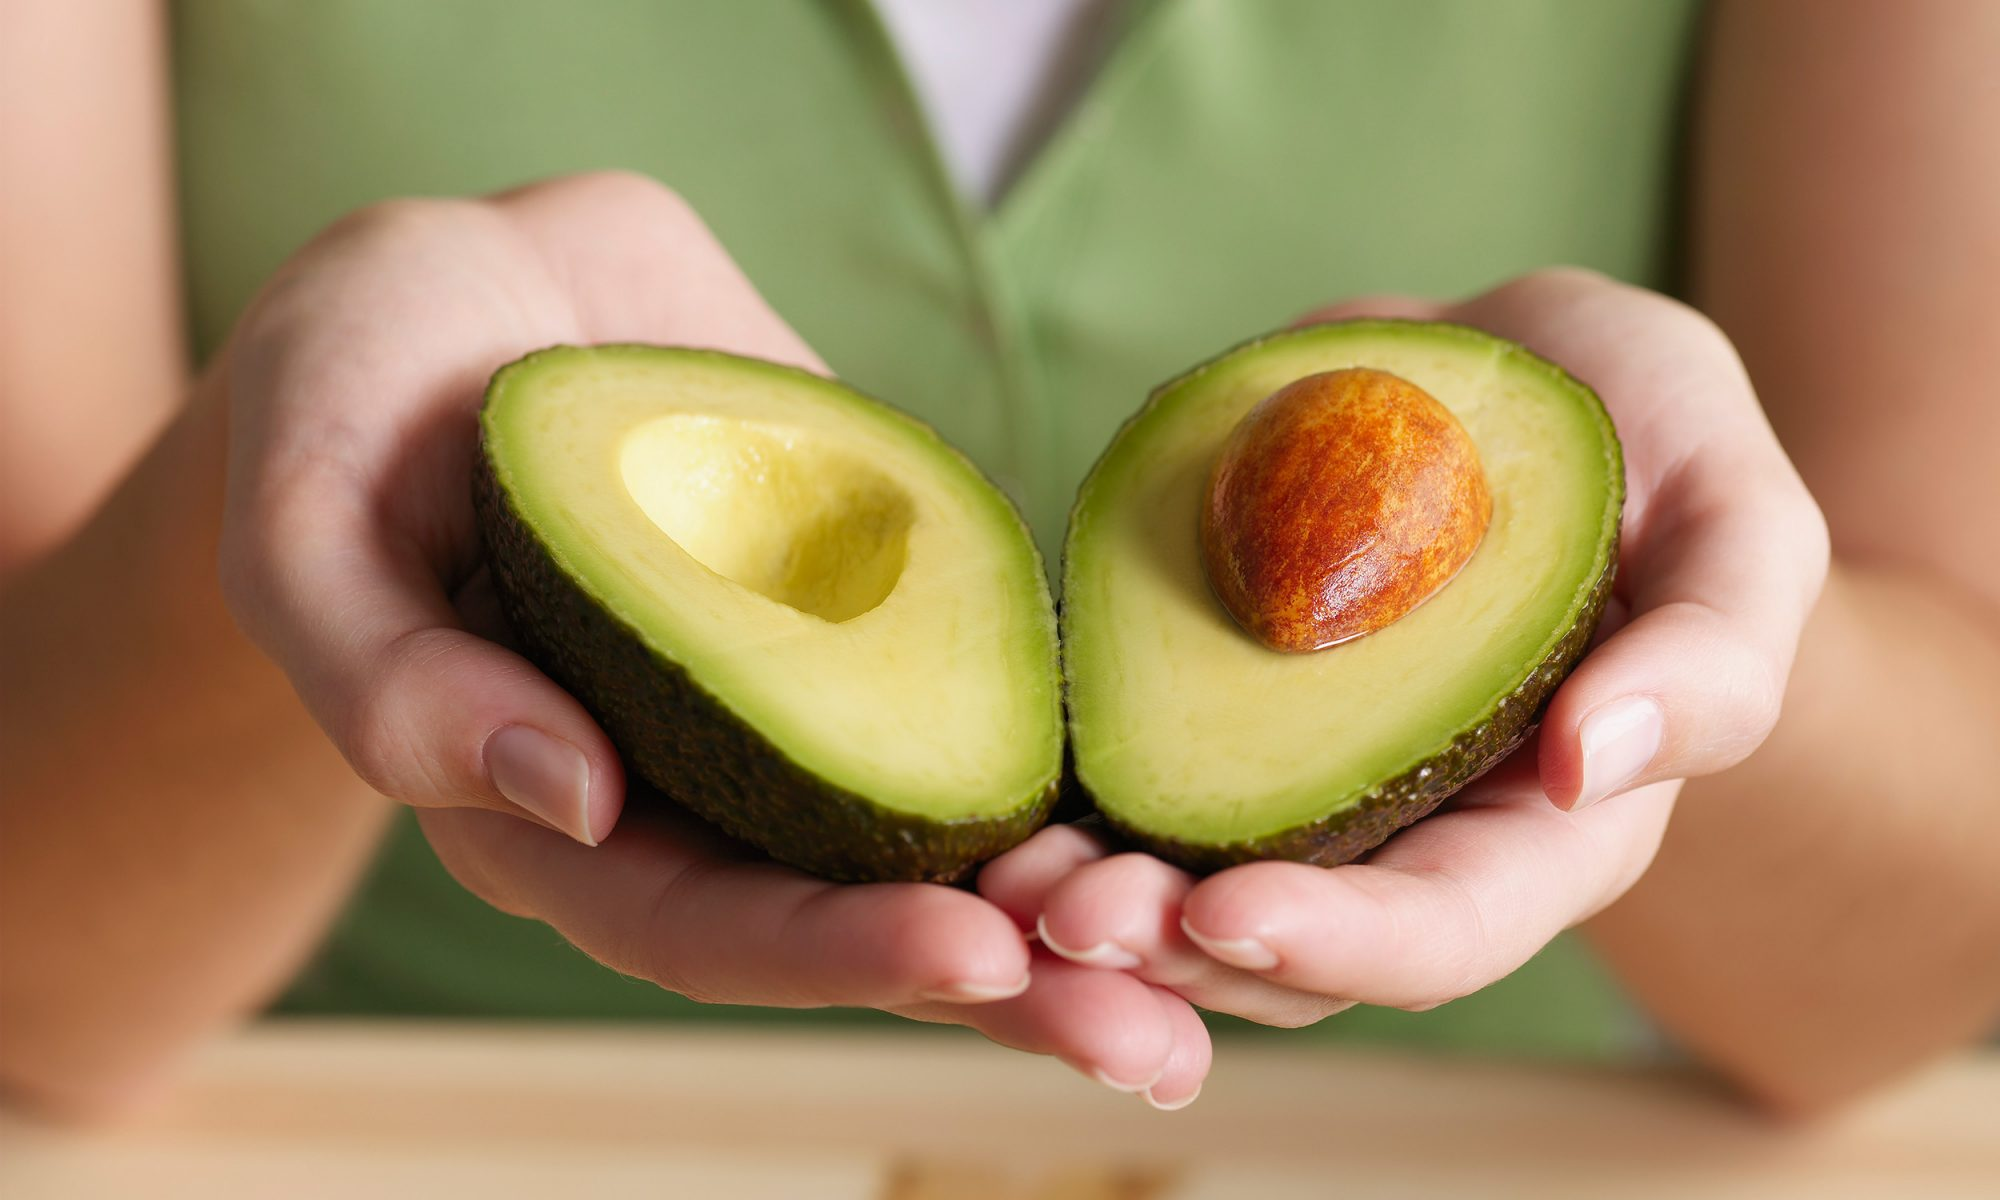 EC: Avocado Prices Have Doubled in the Last Year and Show No Signs of Slowing Down